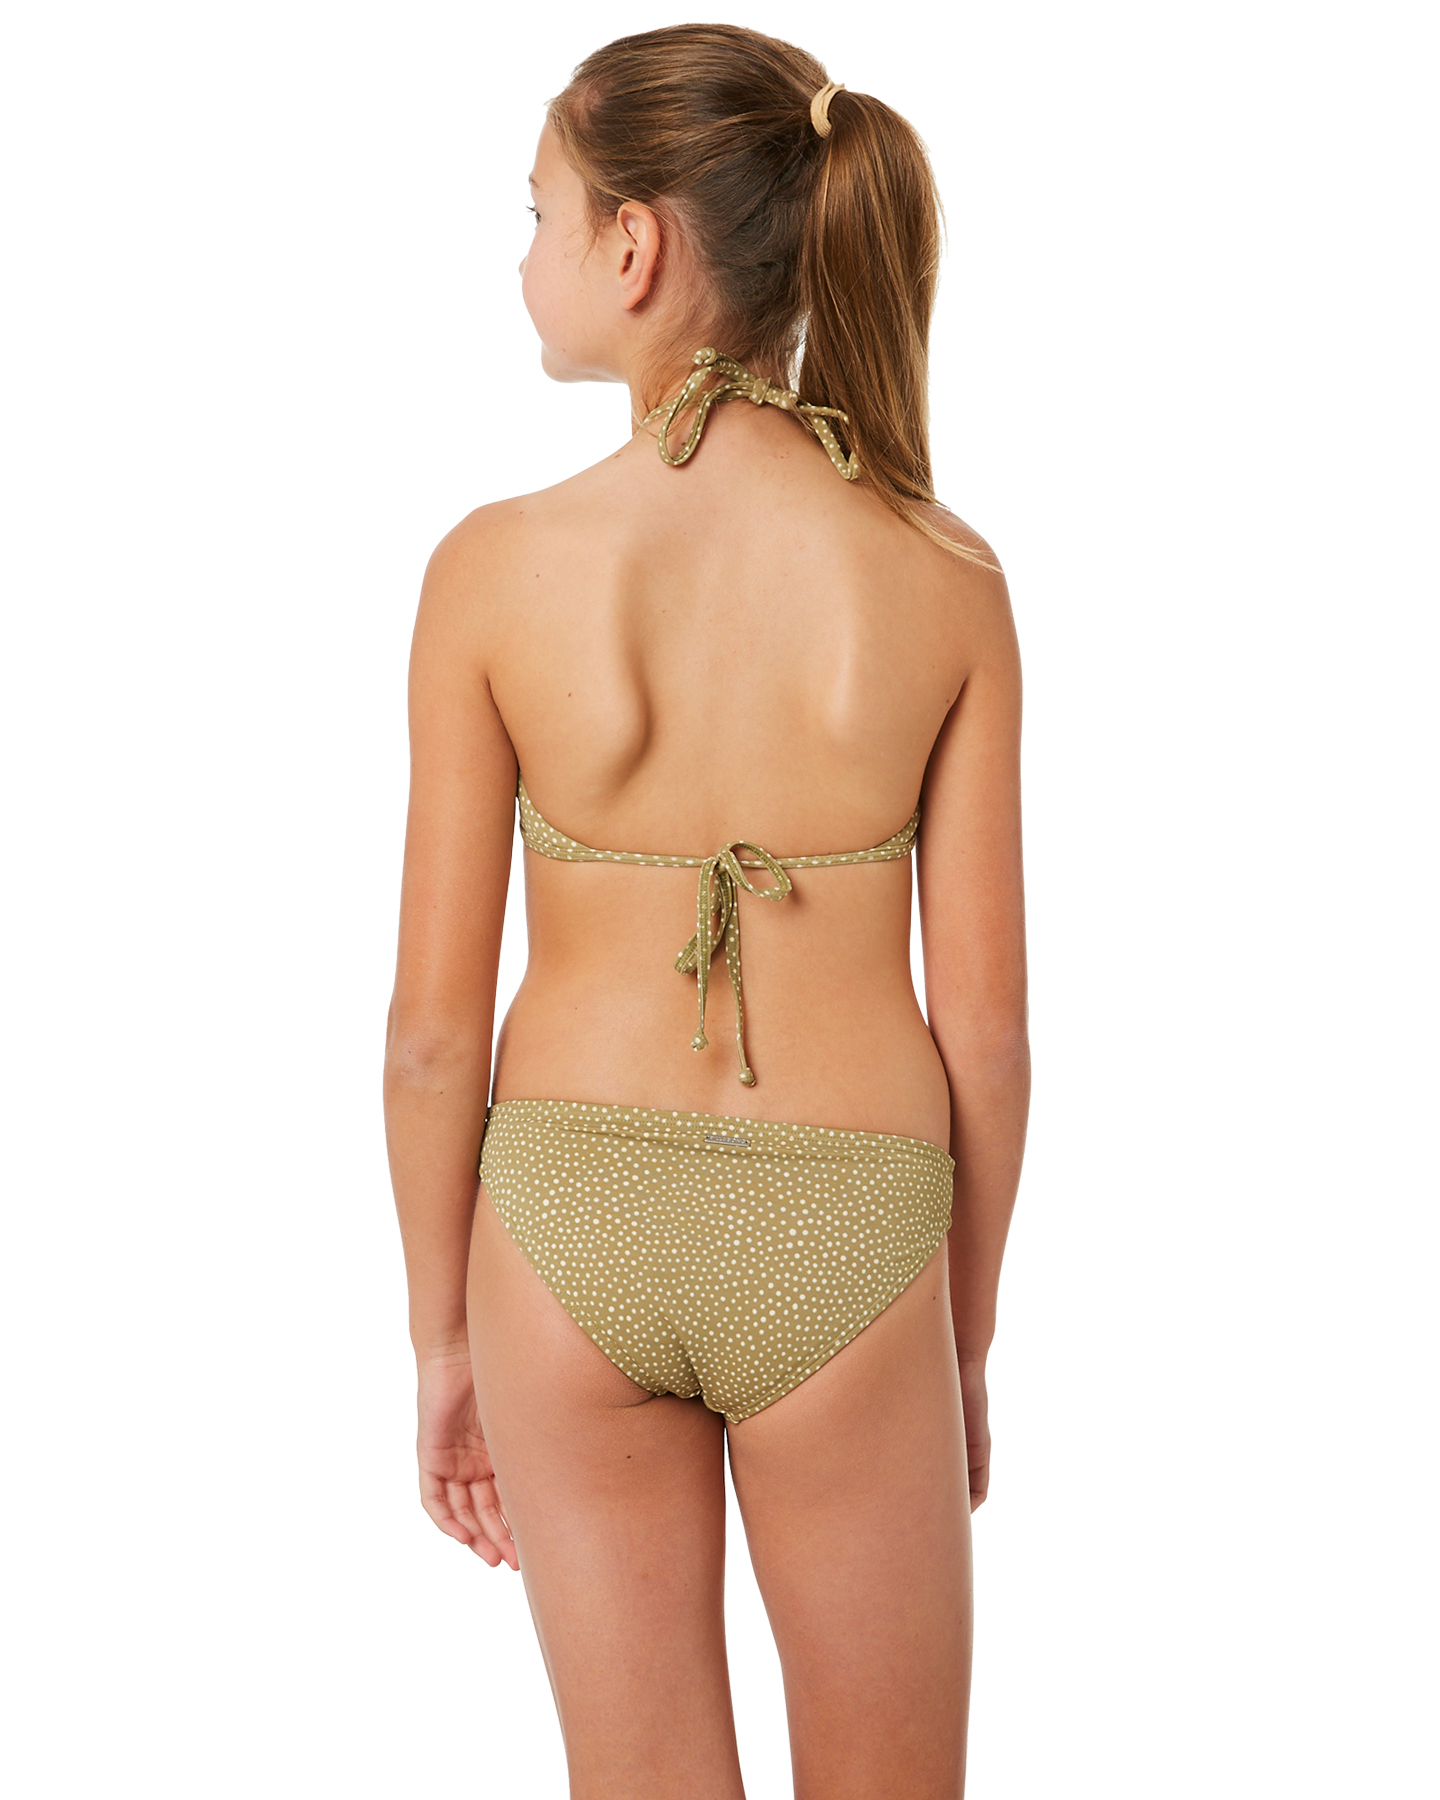 Pre Teens Swim Suit Bottom On Only Pictures: Billabong Masha Dot Bikini - Sage